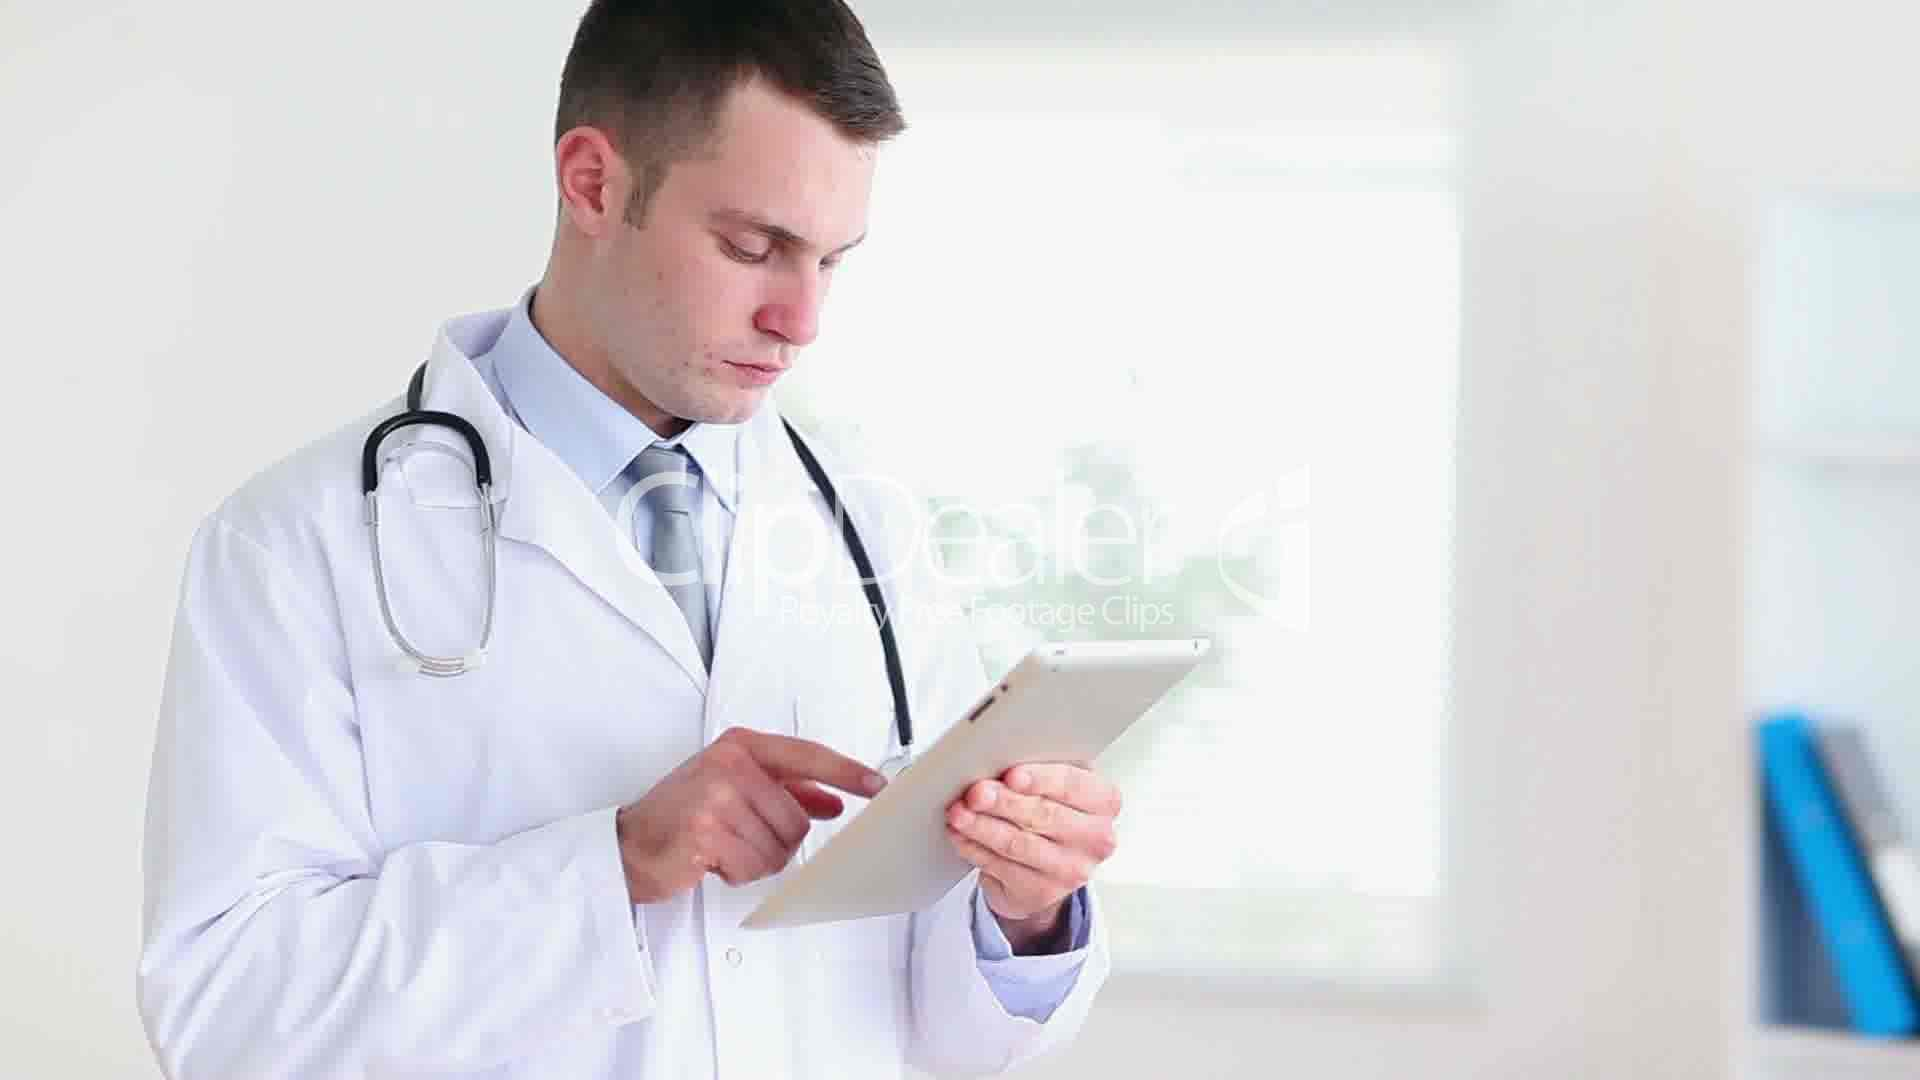 Young doctor using a tablet computer Royaltyfree video